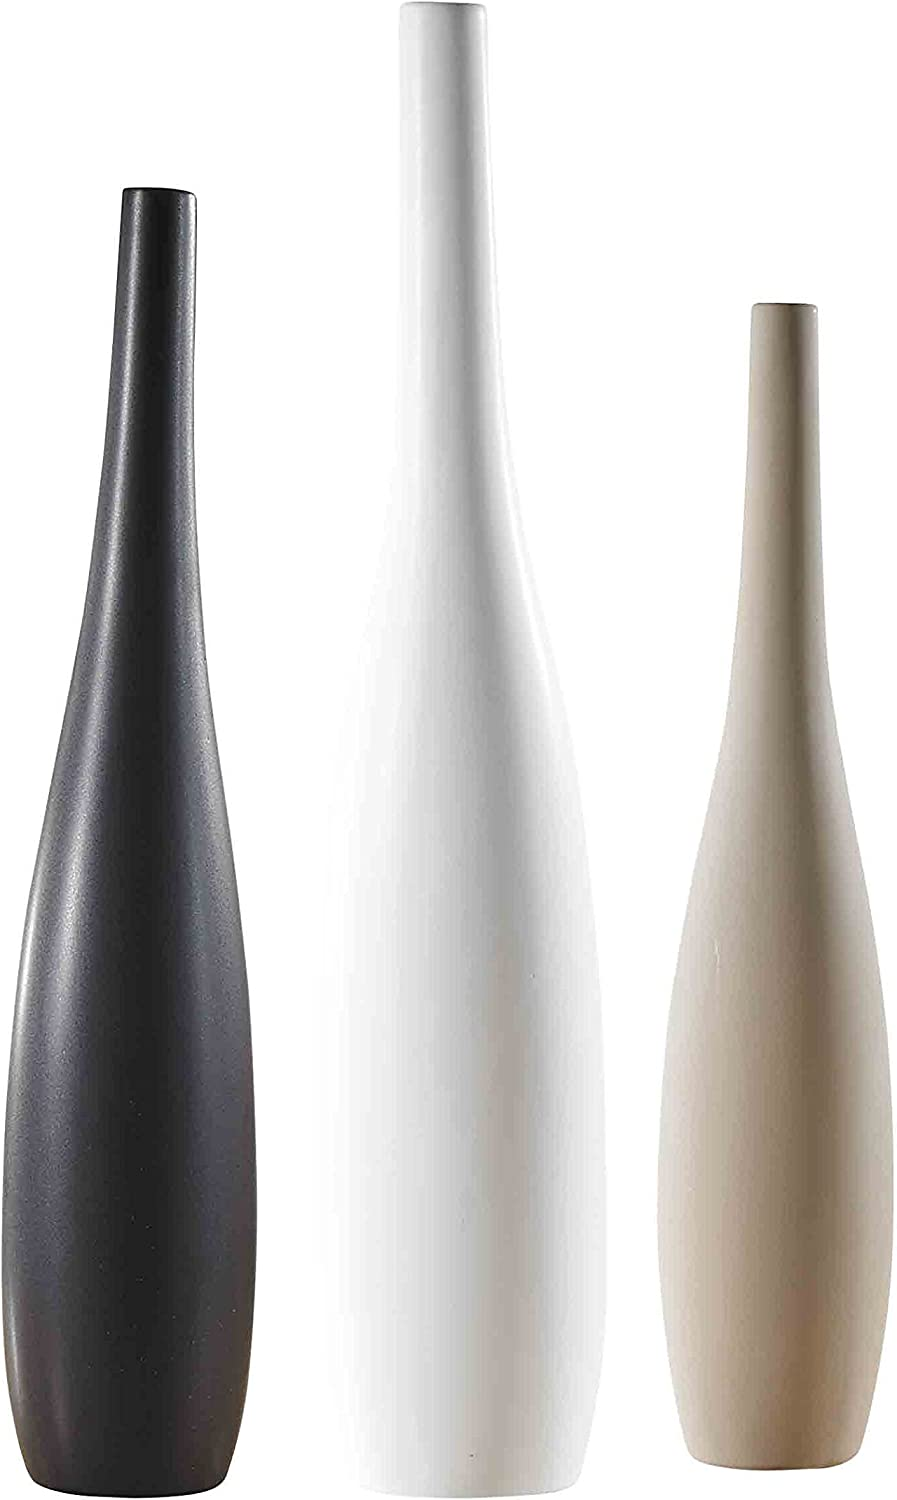 Pure Lifestyle 22 19 17 Slim Neck Tall Vases Set Of 3 Three Colors Ceramic Decoration Flower Vase Porcelain Crafts Wedding Gifts Welcome Home Warming Christmas Gift Birthday Presents Amazon Co Uk Kitchen Home